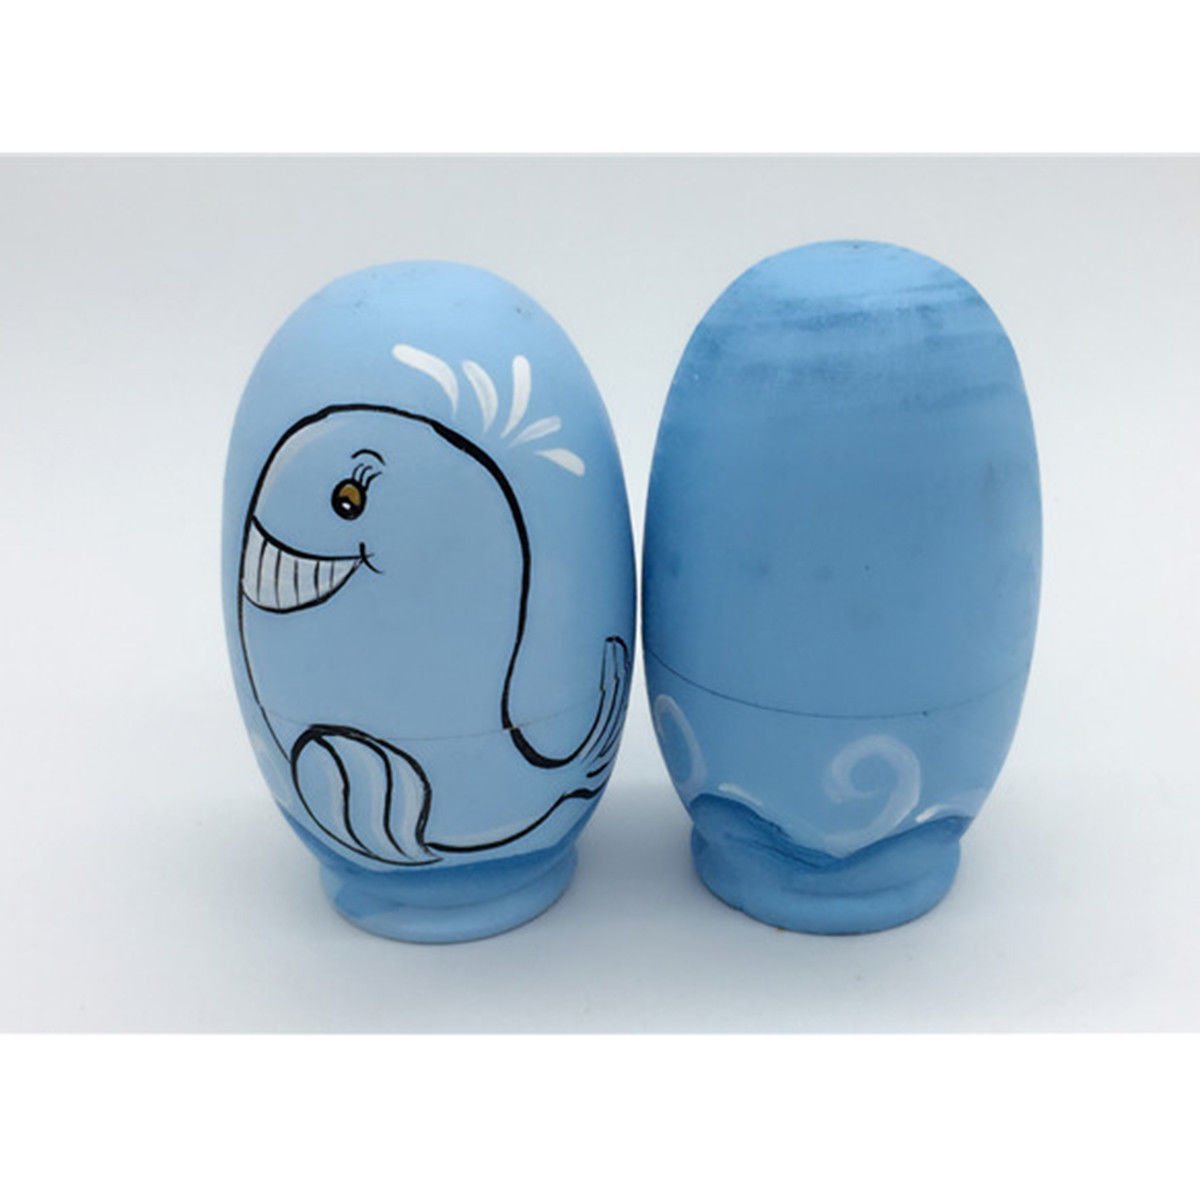 5 Pcs Nesting Dolls Dolphin Adorable Colorful Storage Toy Russian Dolls for Kids